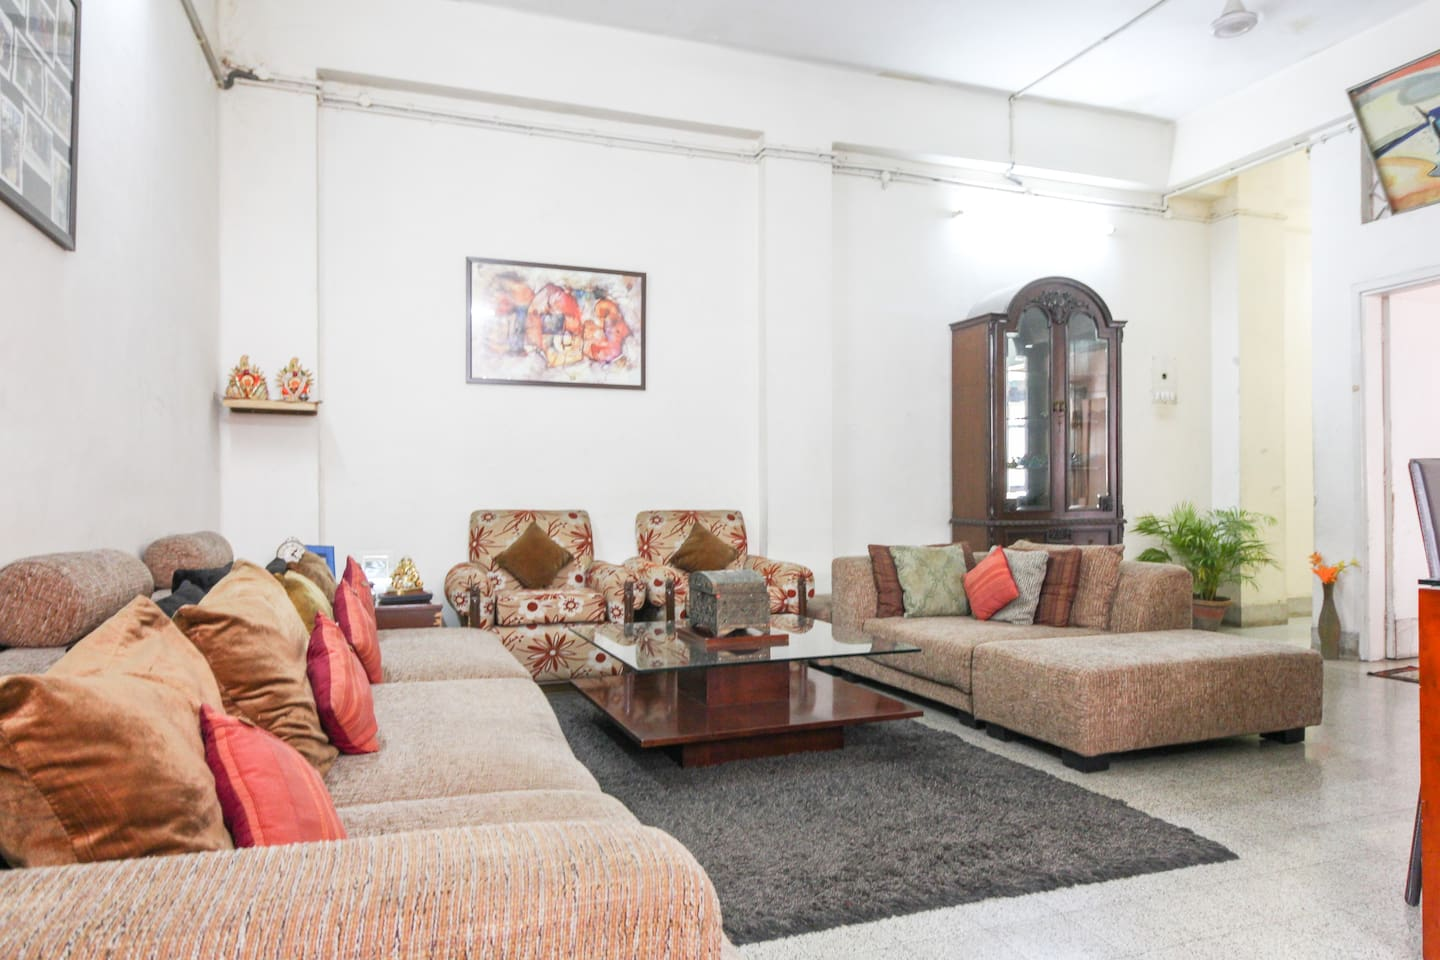 This is a big living room with good seating areas with comfortable couches to sit or to rest also . There is a dining space which can used for eating meals as well as working on the laptop . There is free wifi with good speed . There is a 42 inch TV